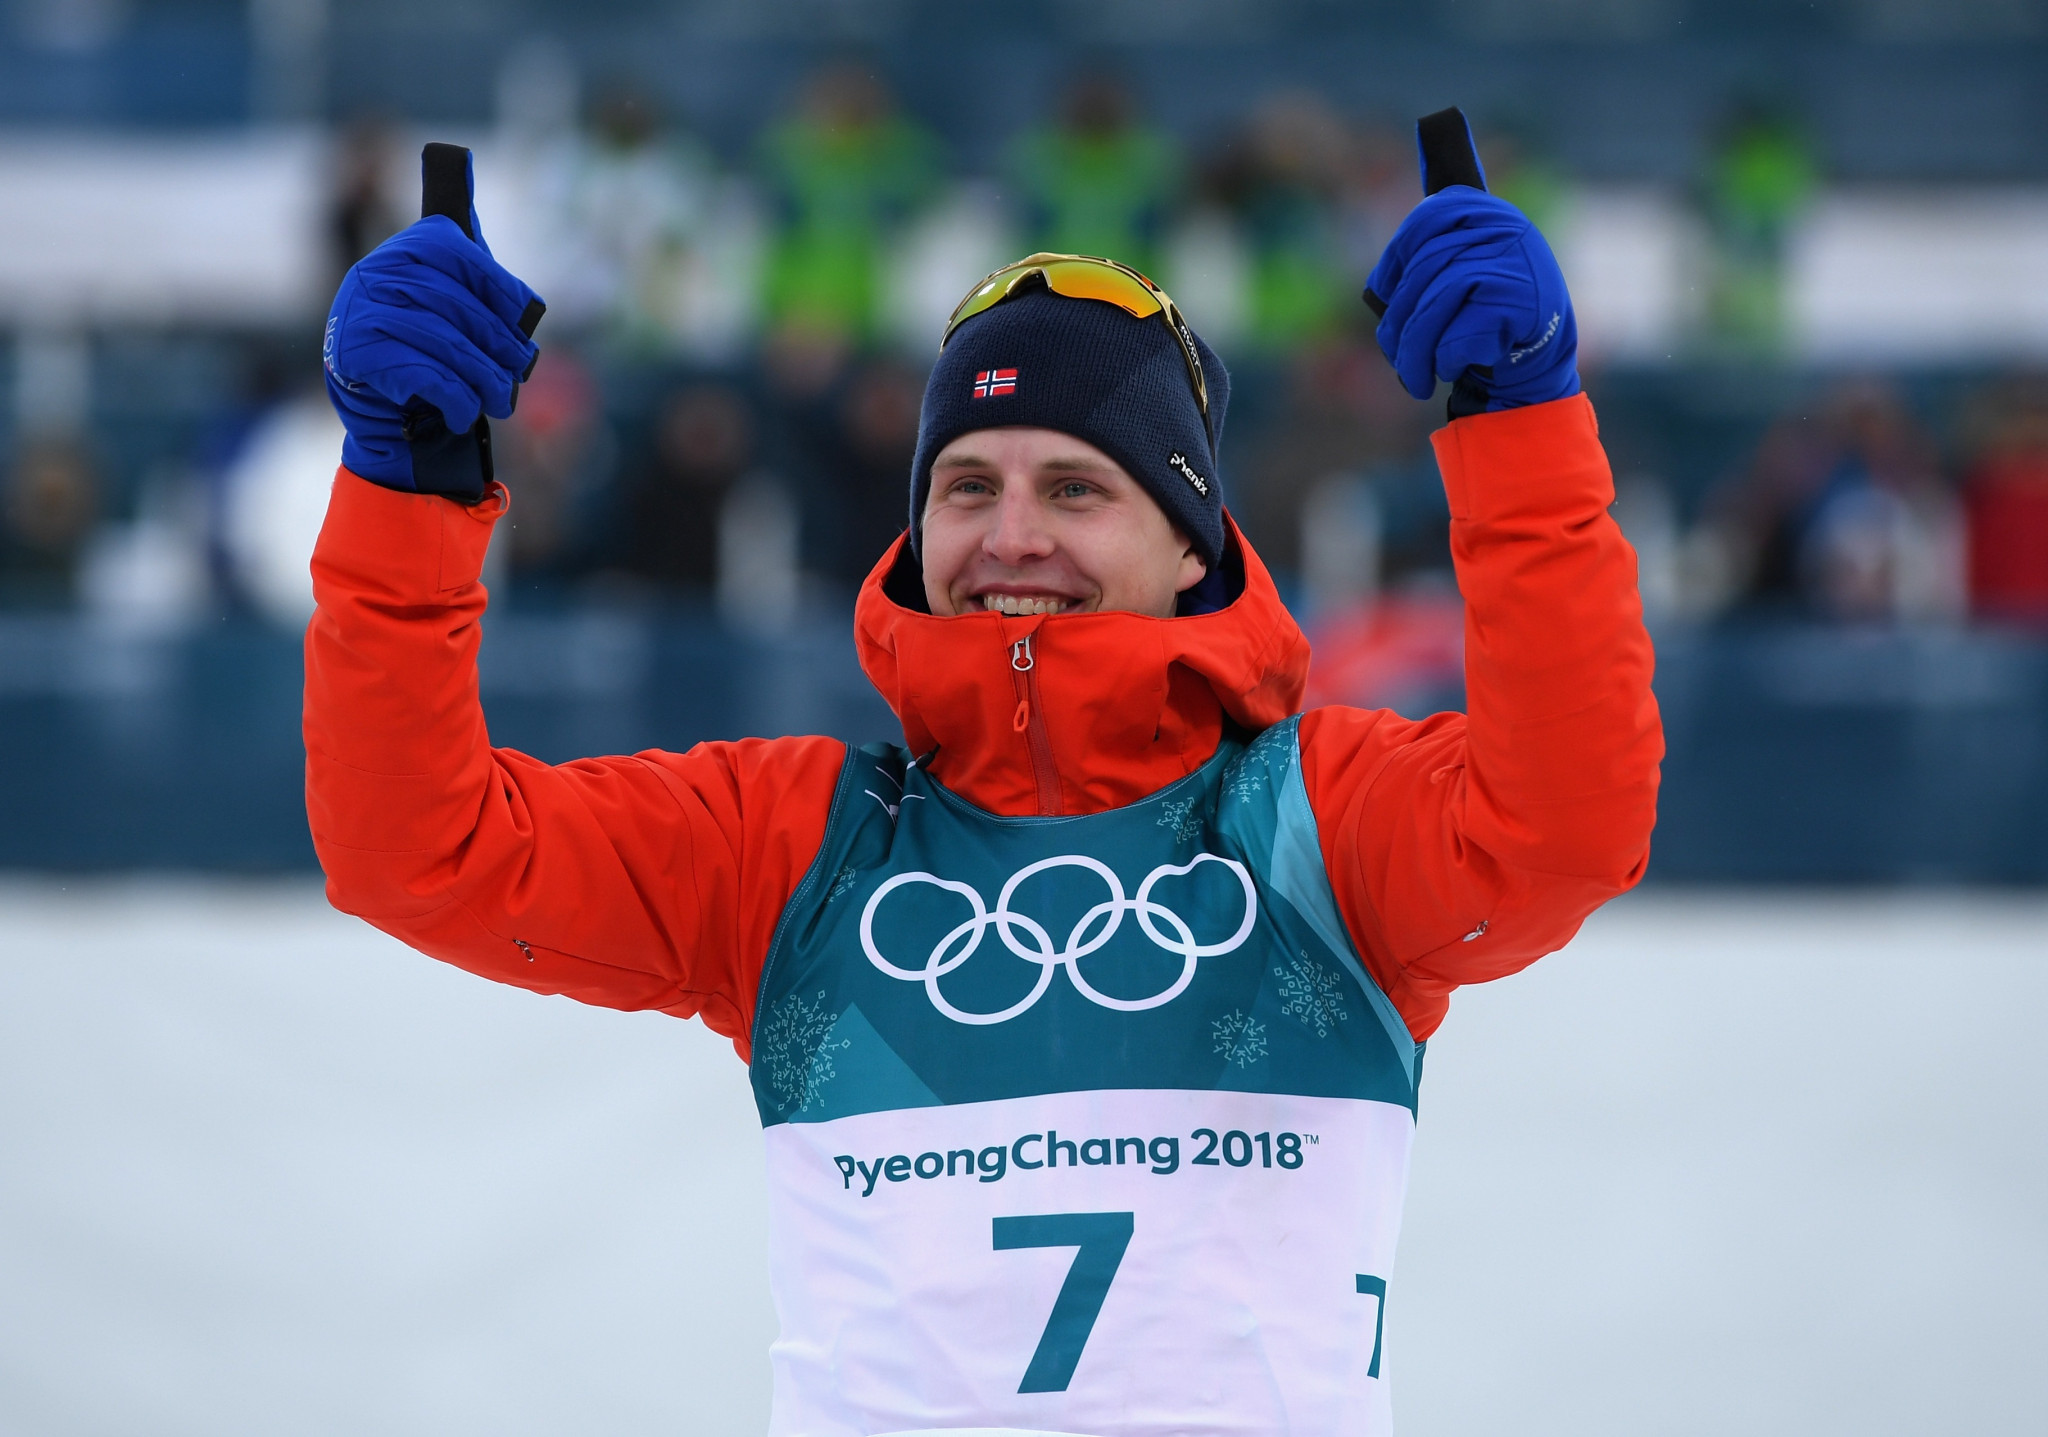 Norway's Krueger wins men's skiathlon